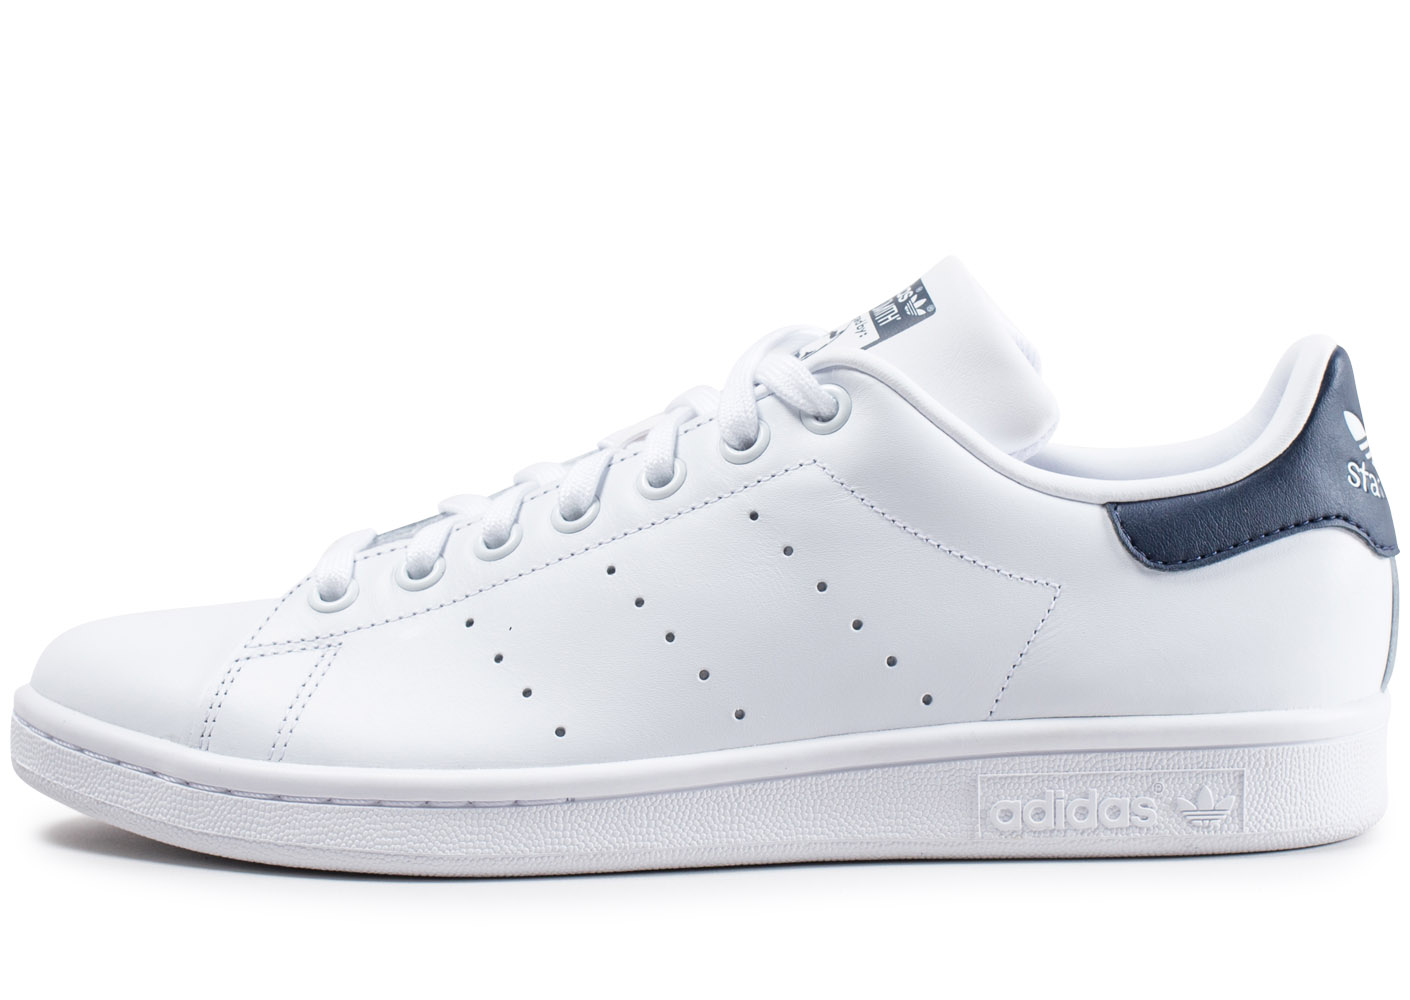 official photos f875a 9c5ea Stan Smith Blanche Et Bleue. adidas